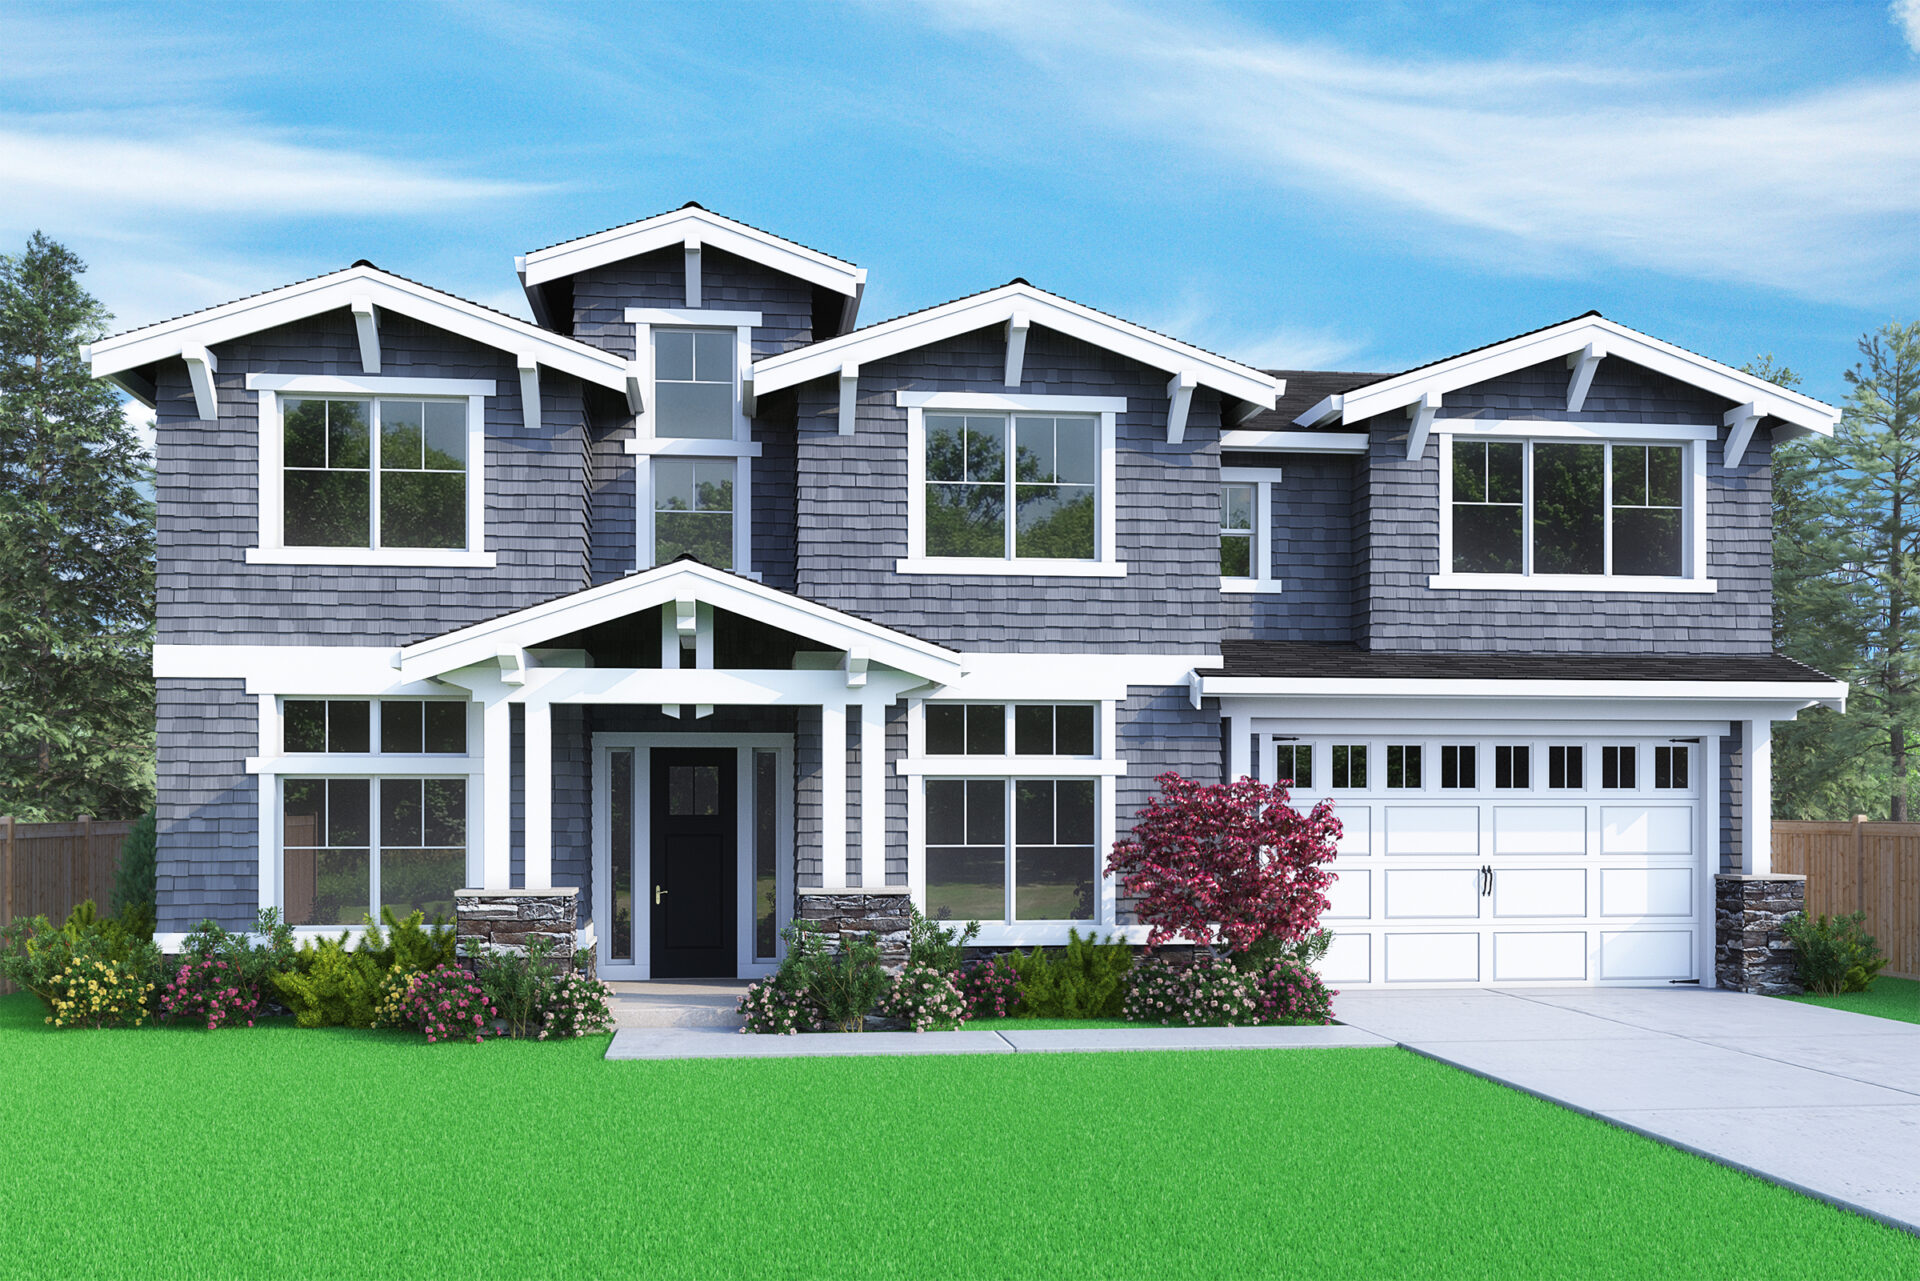 View our new luxury home construction on 701 18th AVE W, in Kirkland, WA from MN Custom Homes